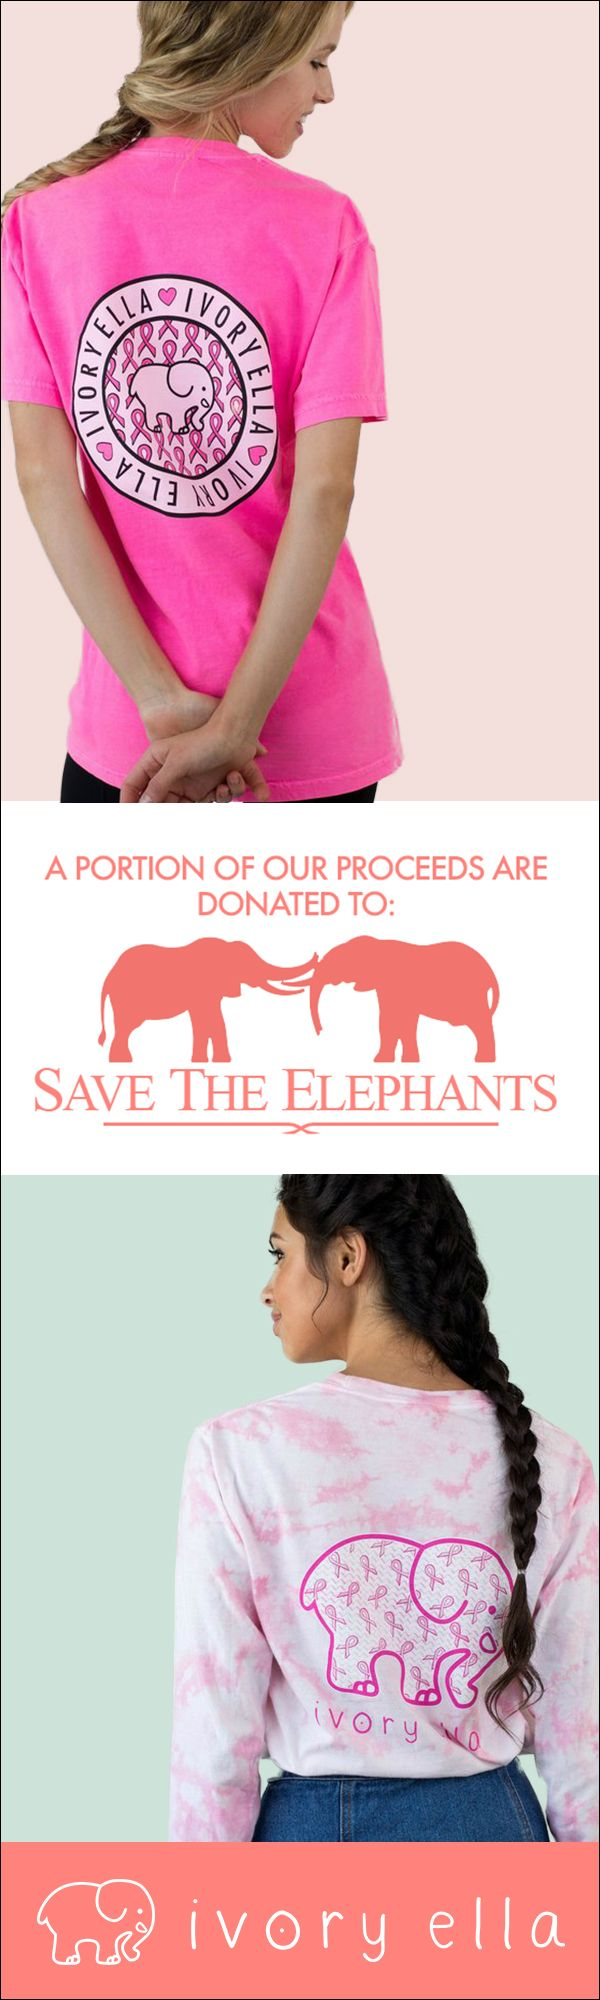 Check out our t-shirt collections and help support Save the Elephants with every purchase. Screen-printed in America.